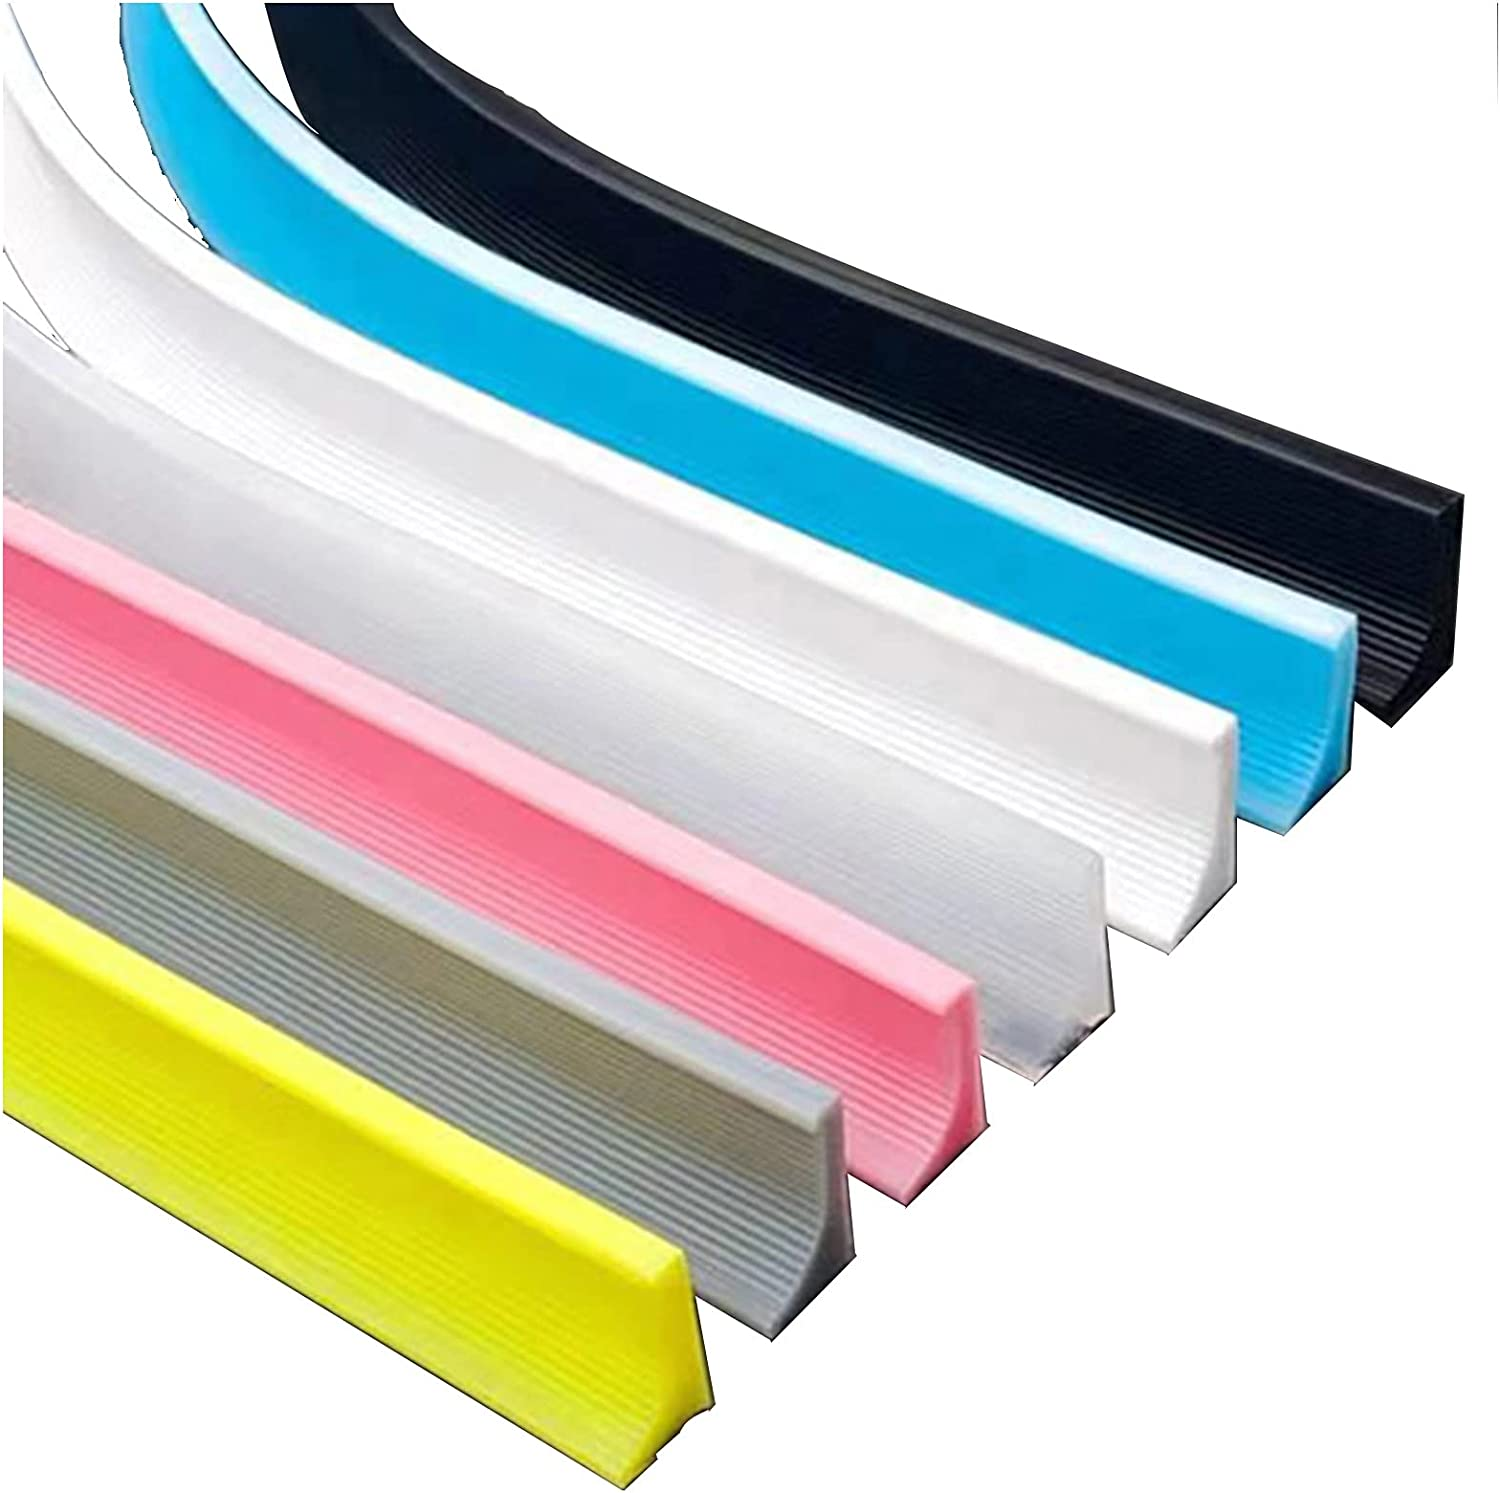 DFANCE Inventory cleanup selling sale Self-Adhesive Silicone Water Strips Blocking Collapsible low-pricing